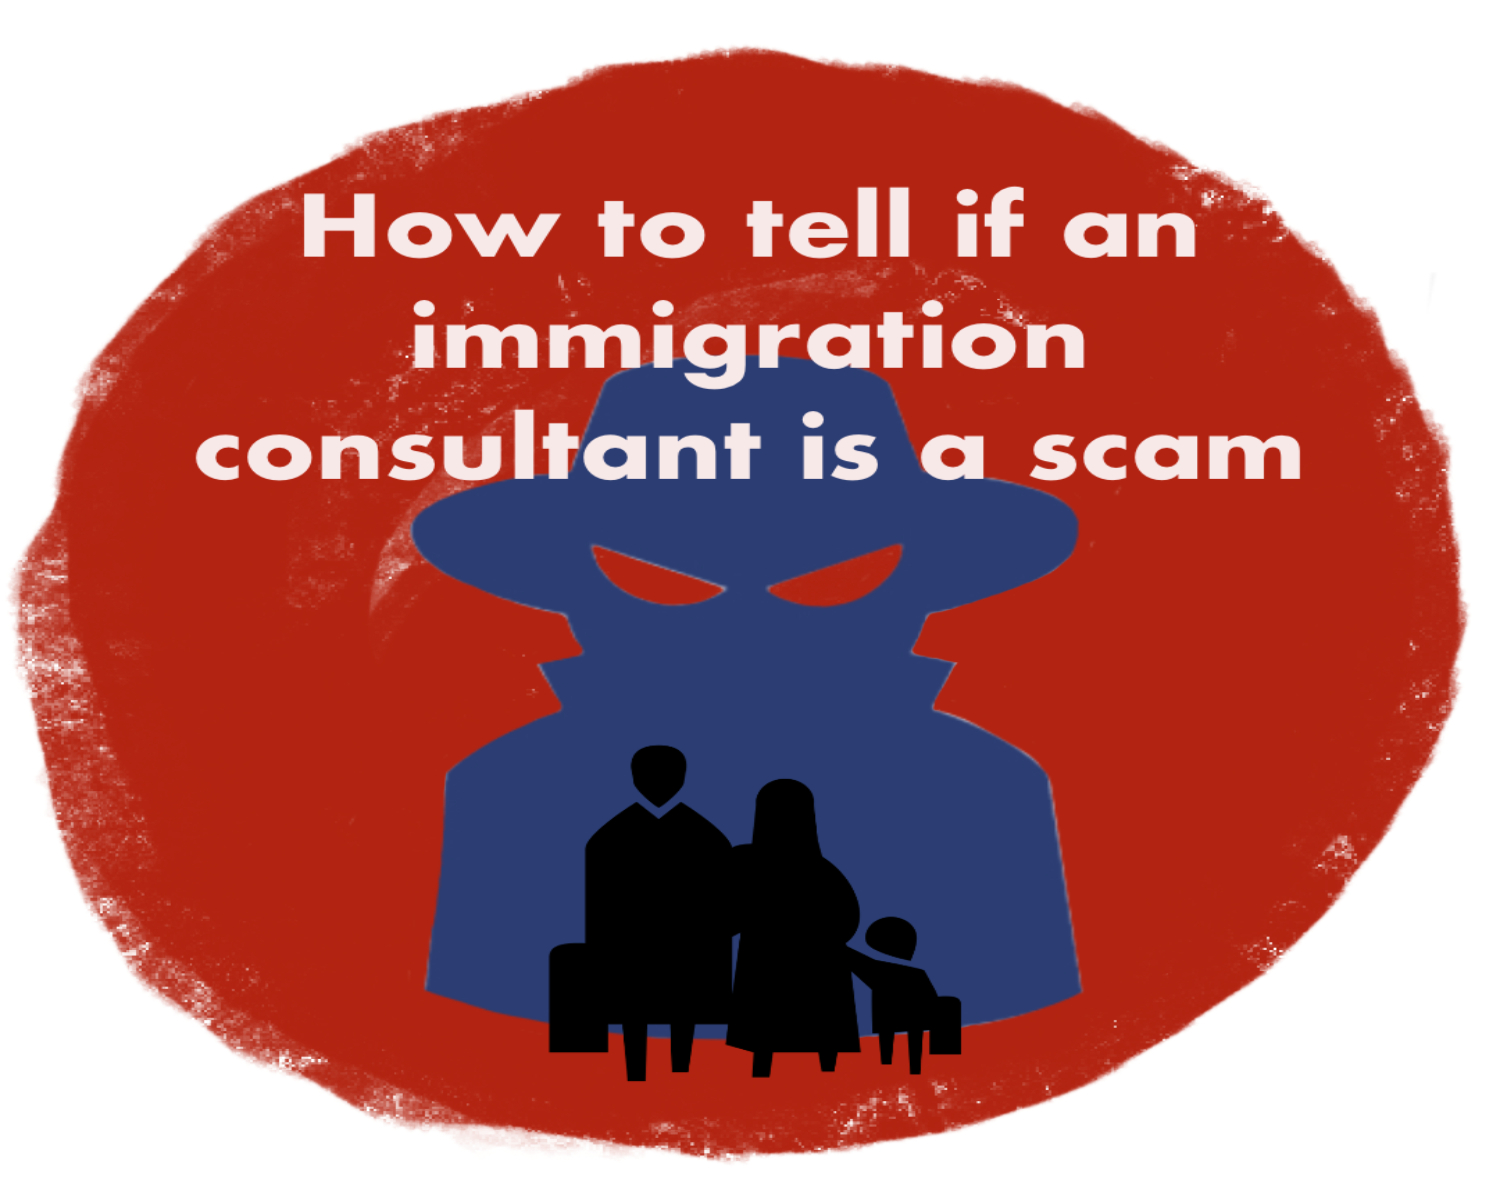 scams by immigration consultants